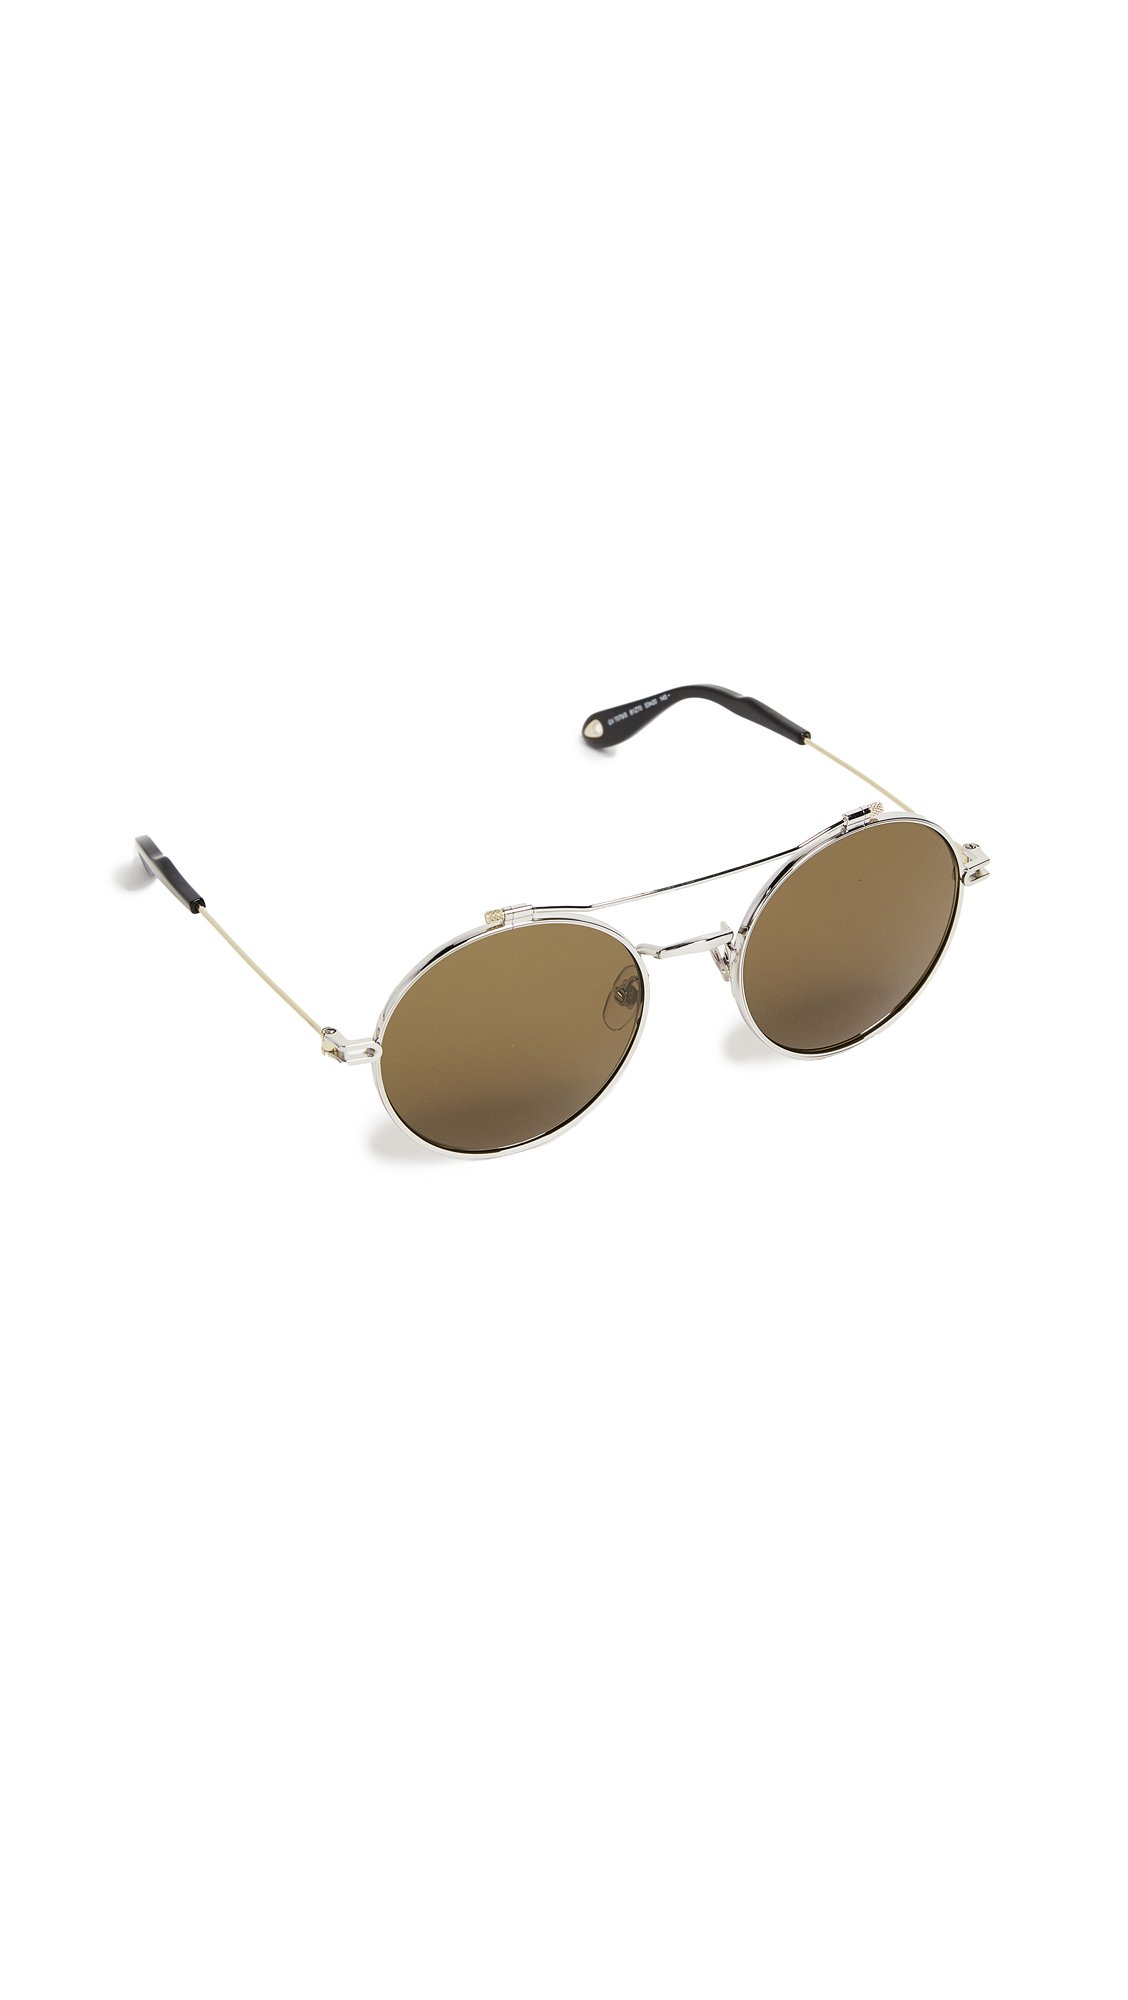 Givenchy Women's Round Browbar Sunglasses, Silver Gold/Brown, One Size